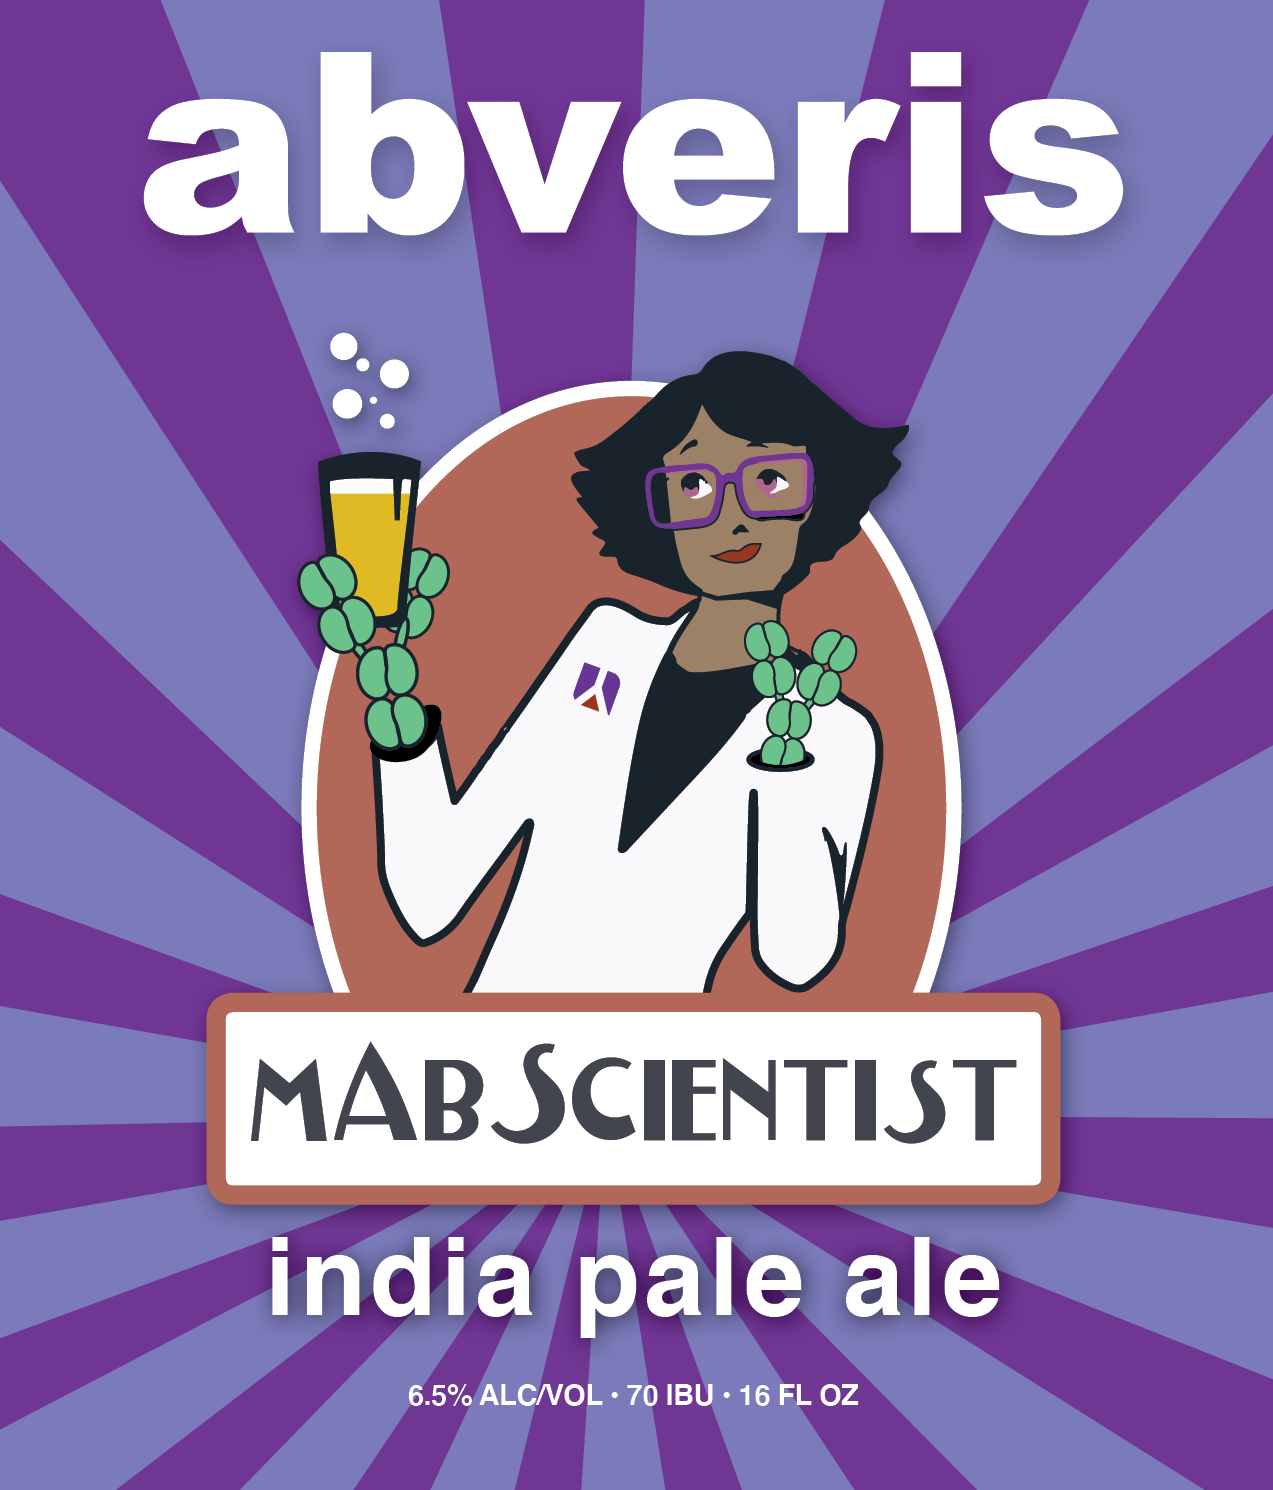 Abveris beer: Get It While It's cold!